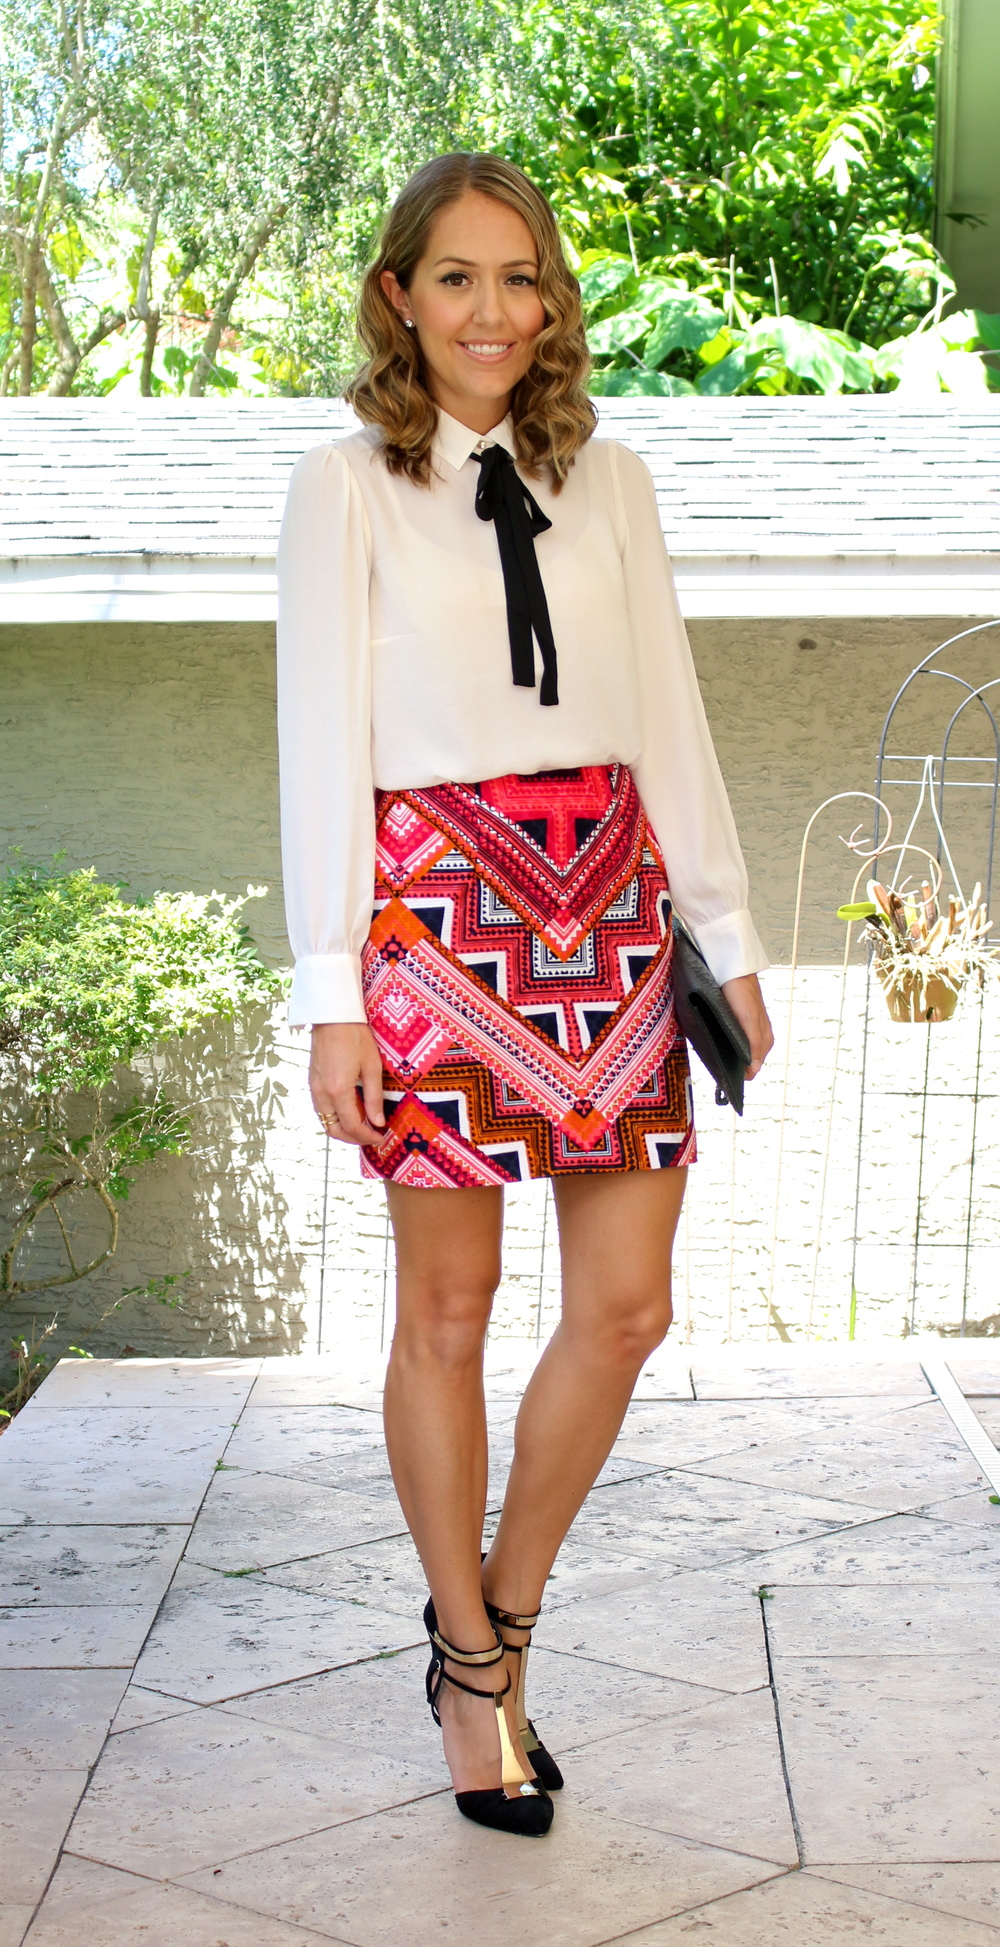 H&M tie front blouse with Target tribal skirt